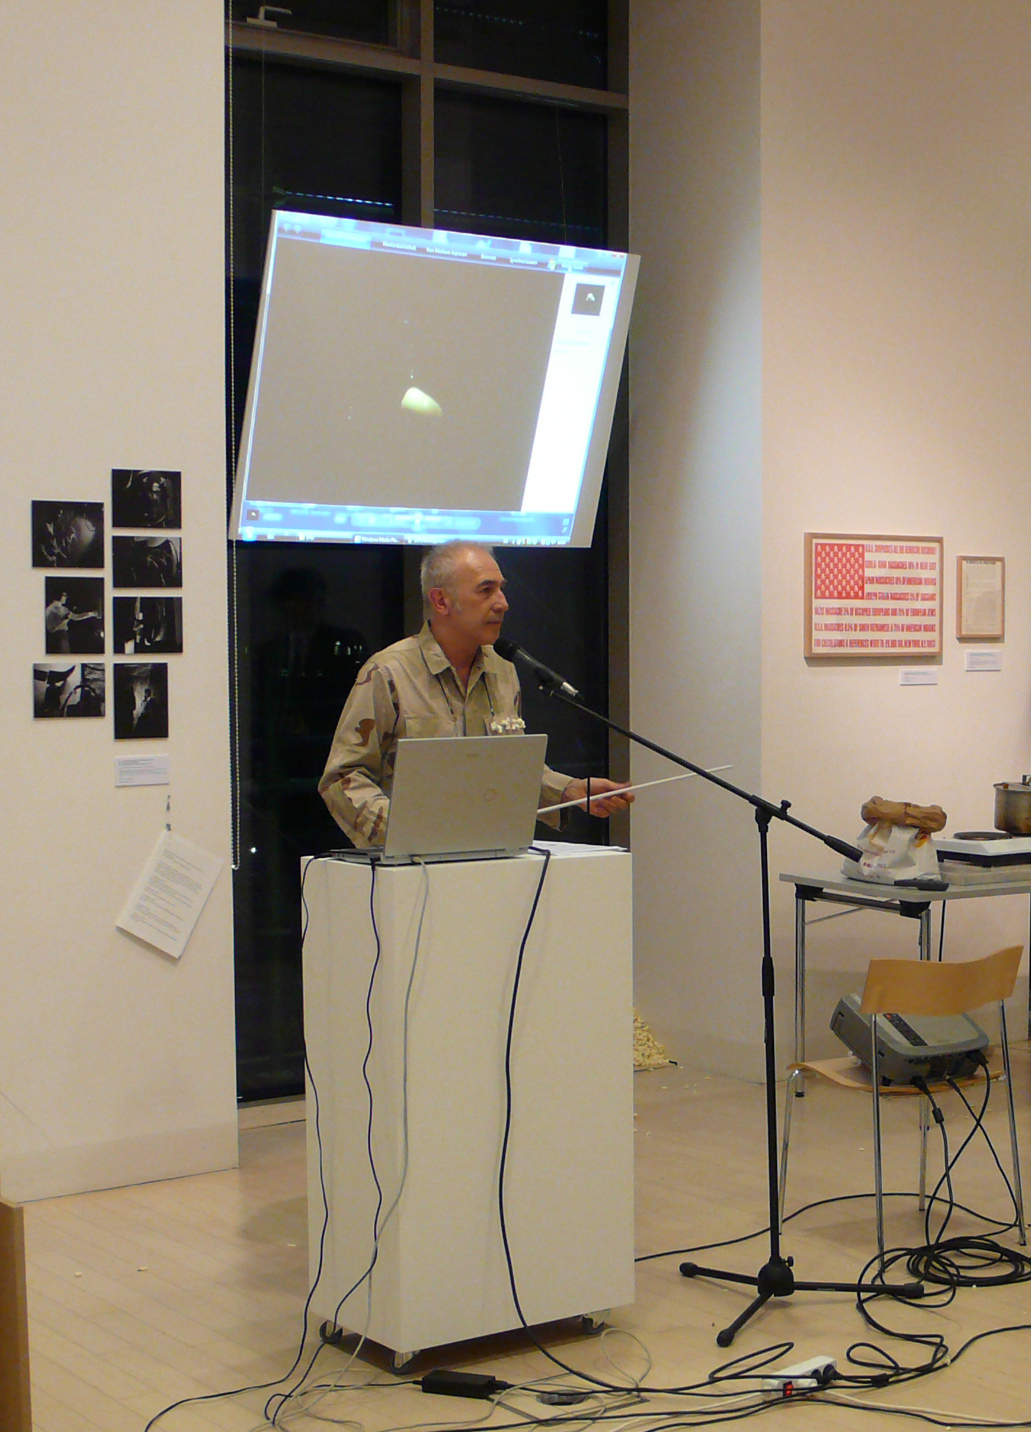 Lecture of Gábor Altorjay in the framework of the Fluxus East exhibition, Ludwig Museum, Budapest, 2008